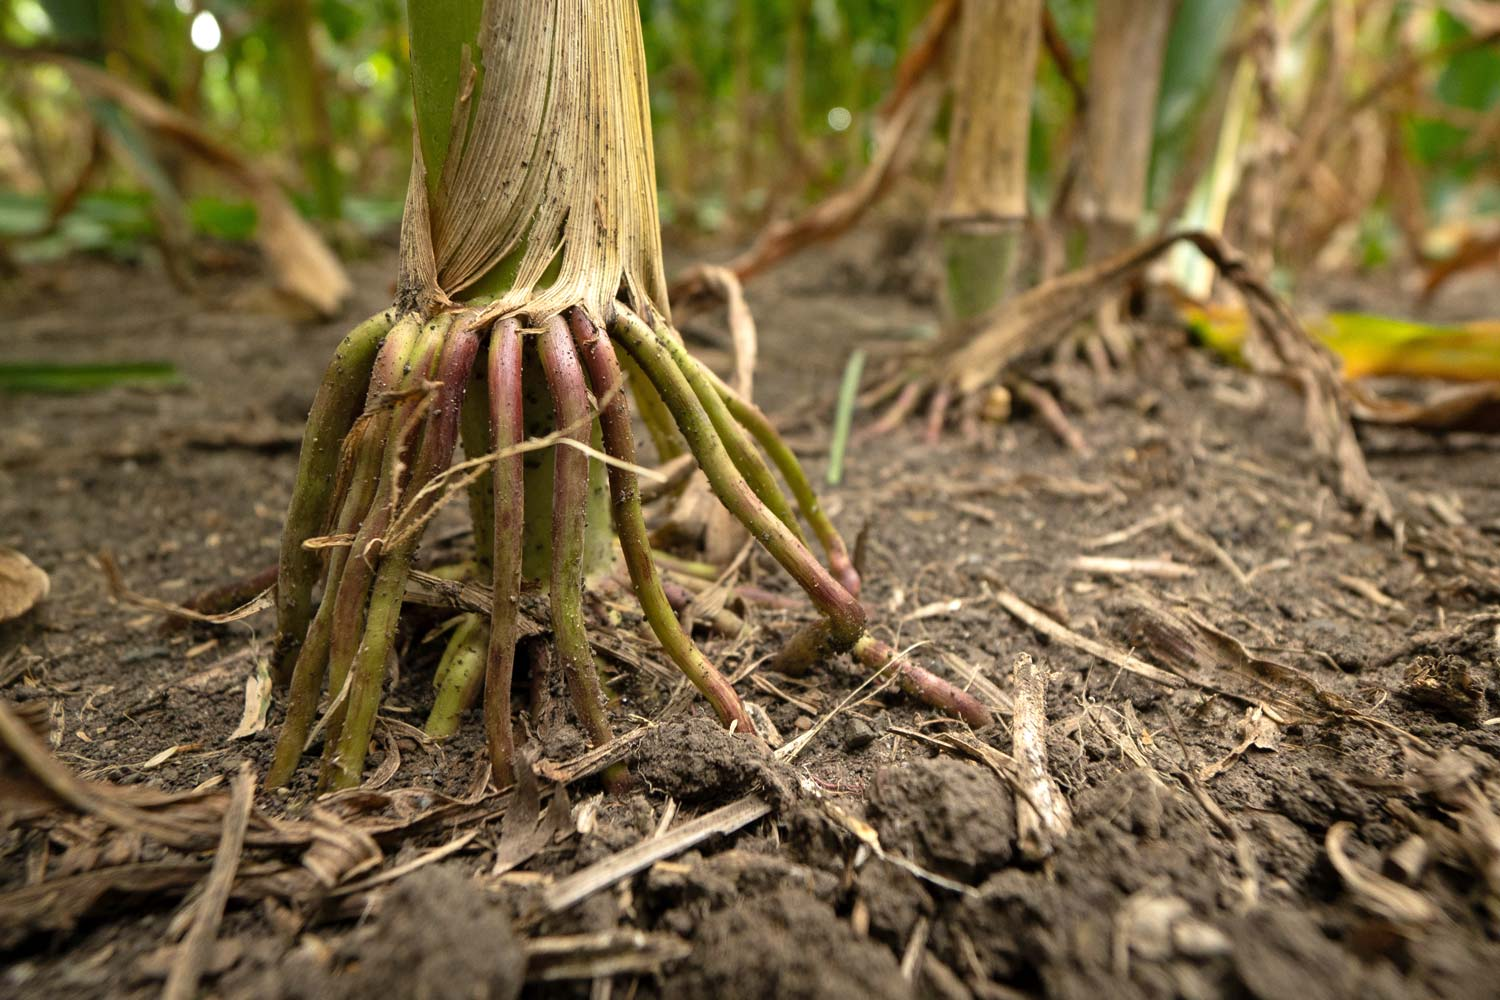 corn plant brace roots seeking nitrogen